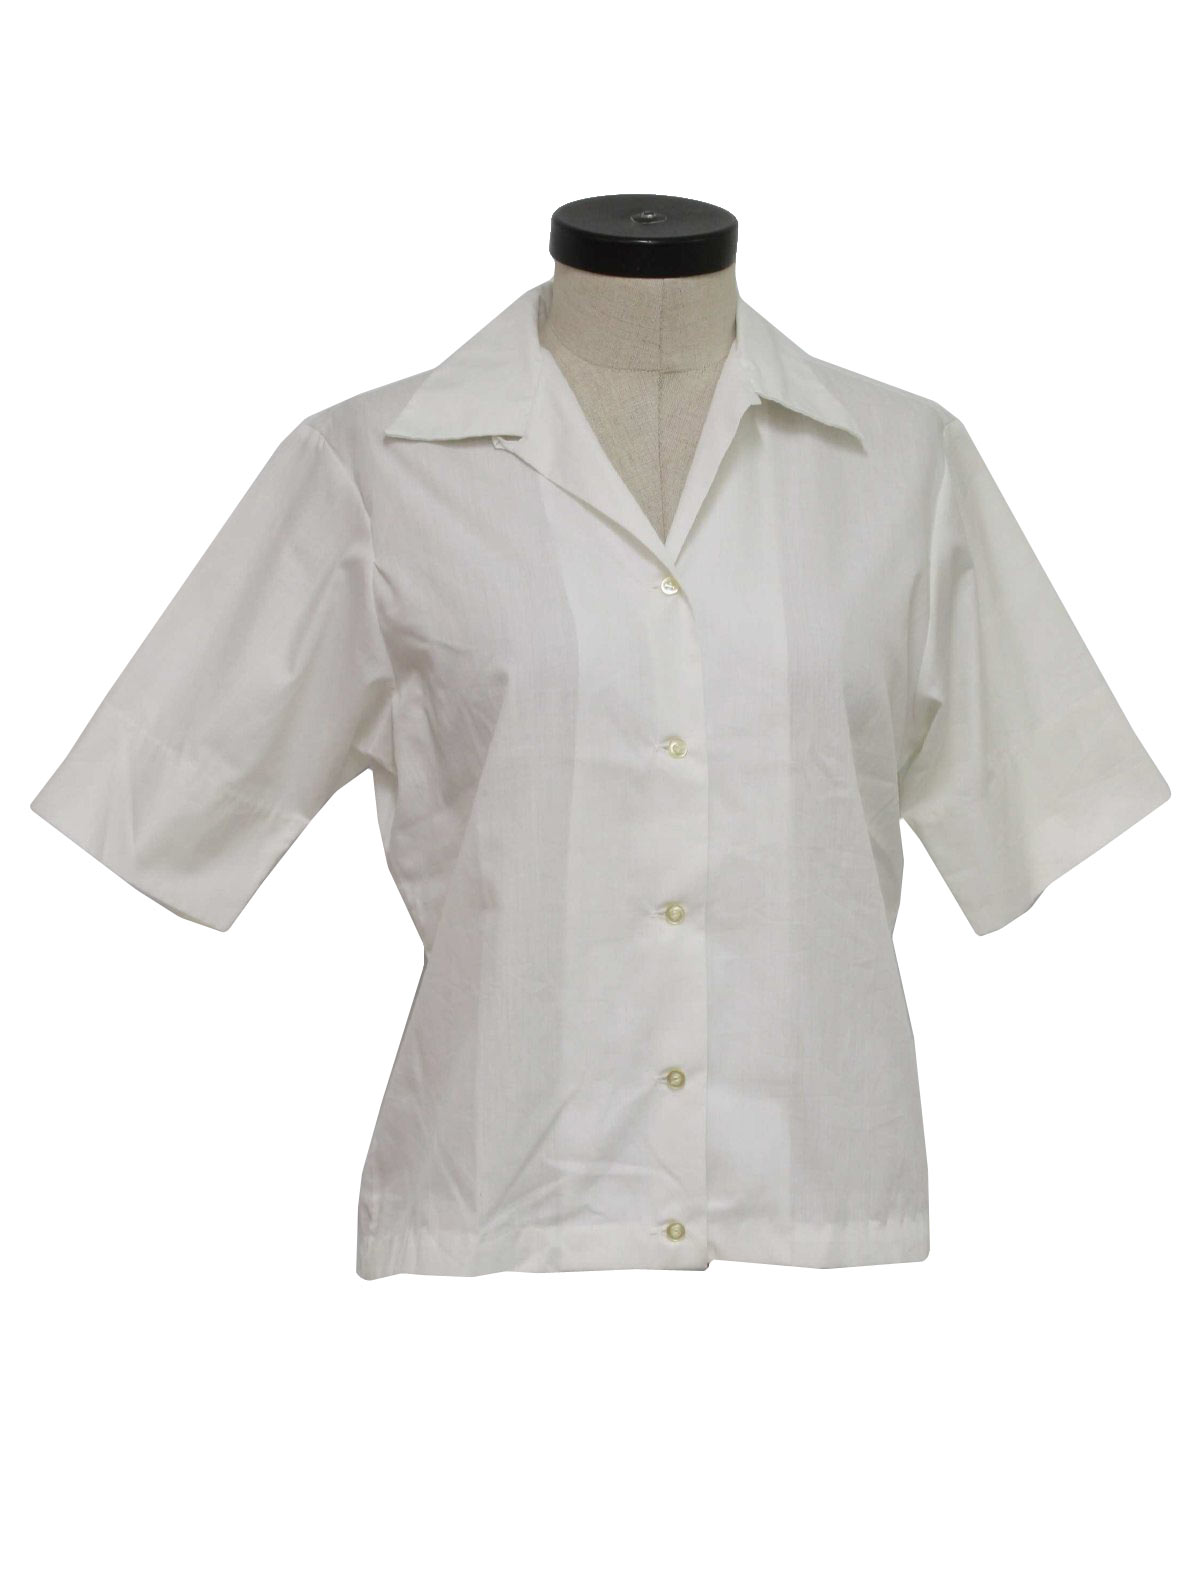 Vintage dorette 60 39 s shirt 60s dorette womens crisp for Crisp white cotton shirt